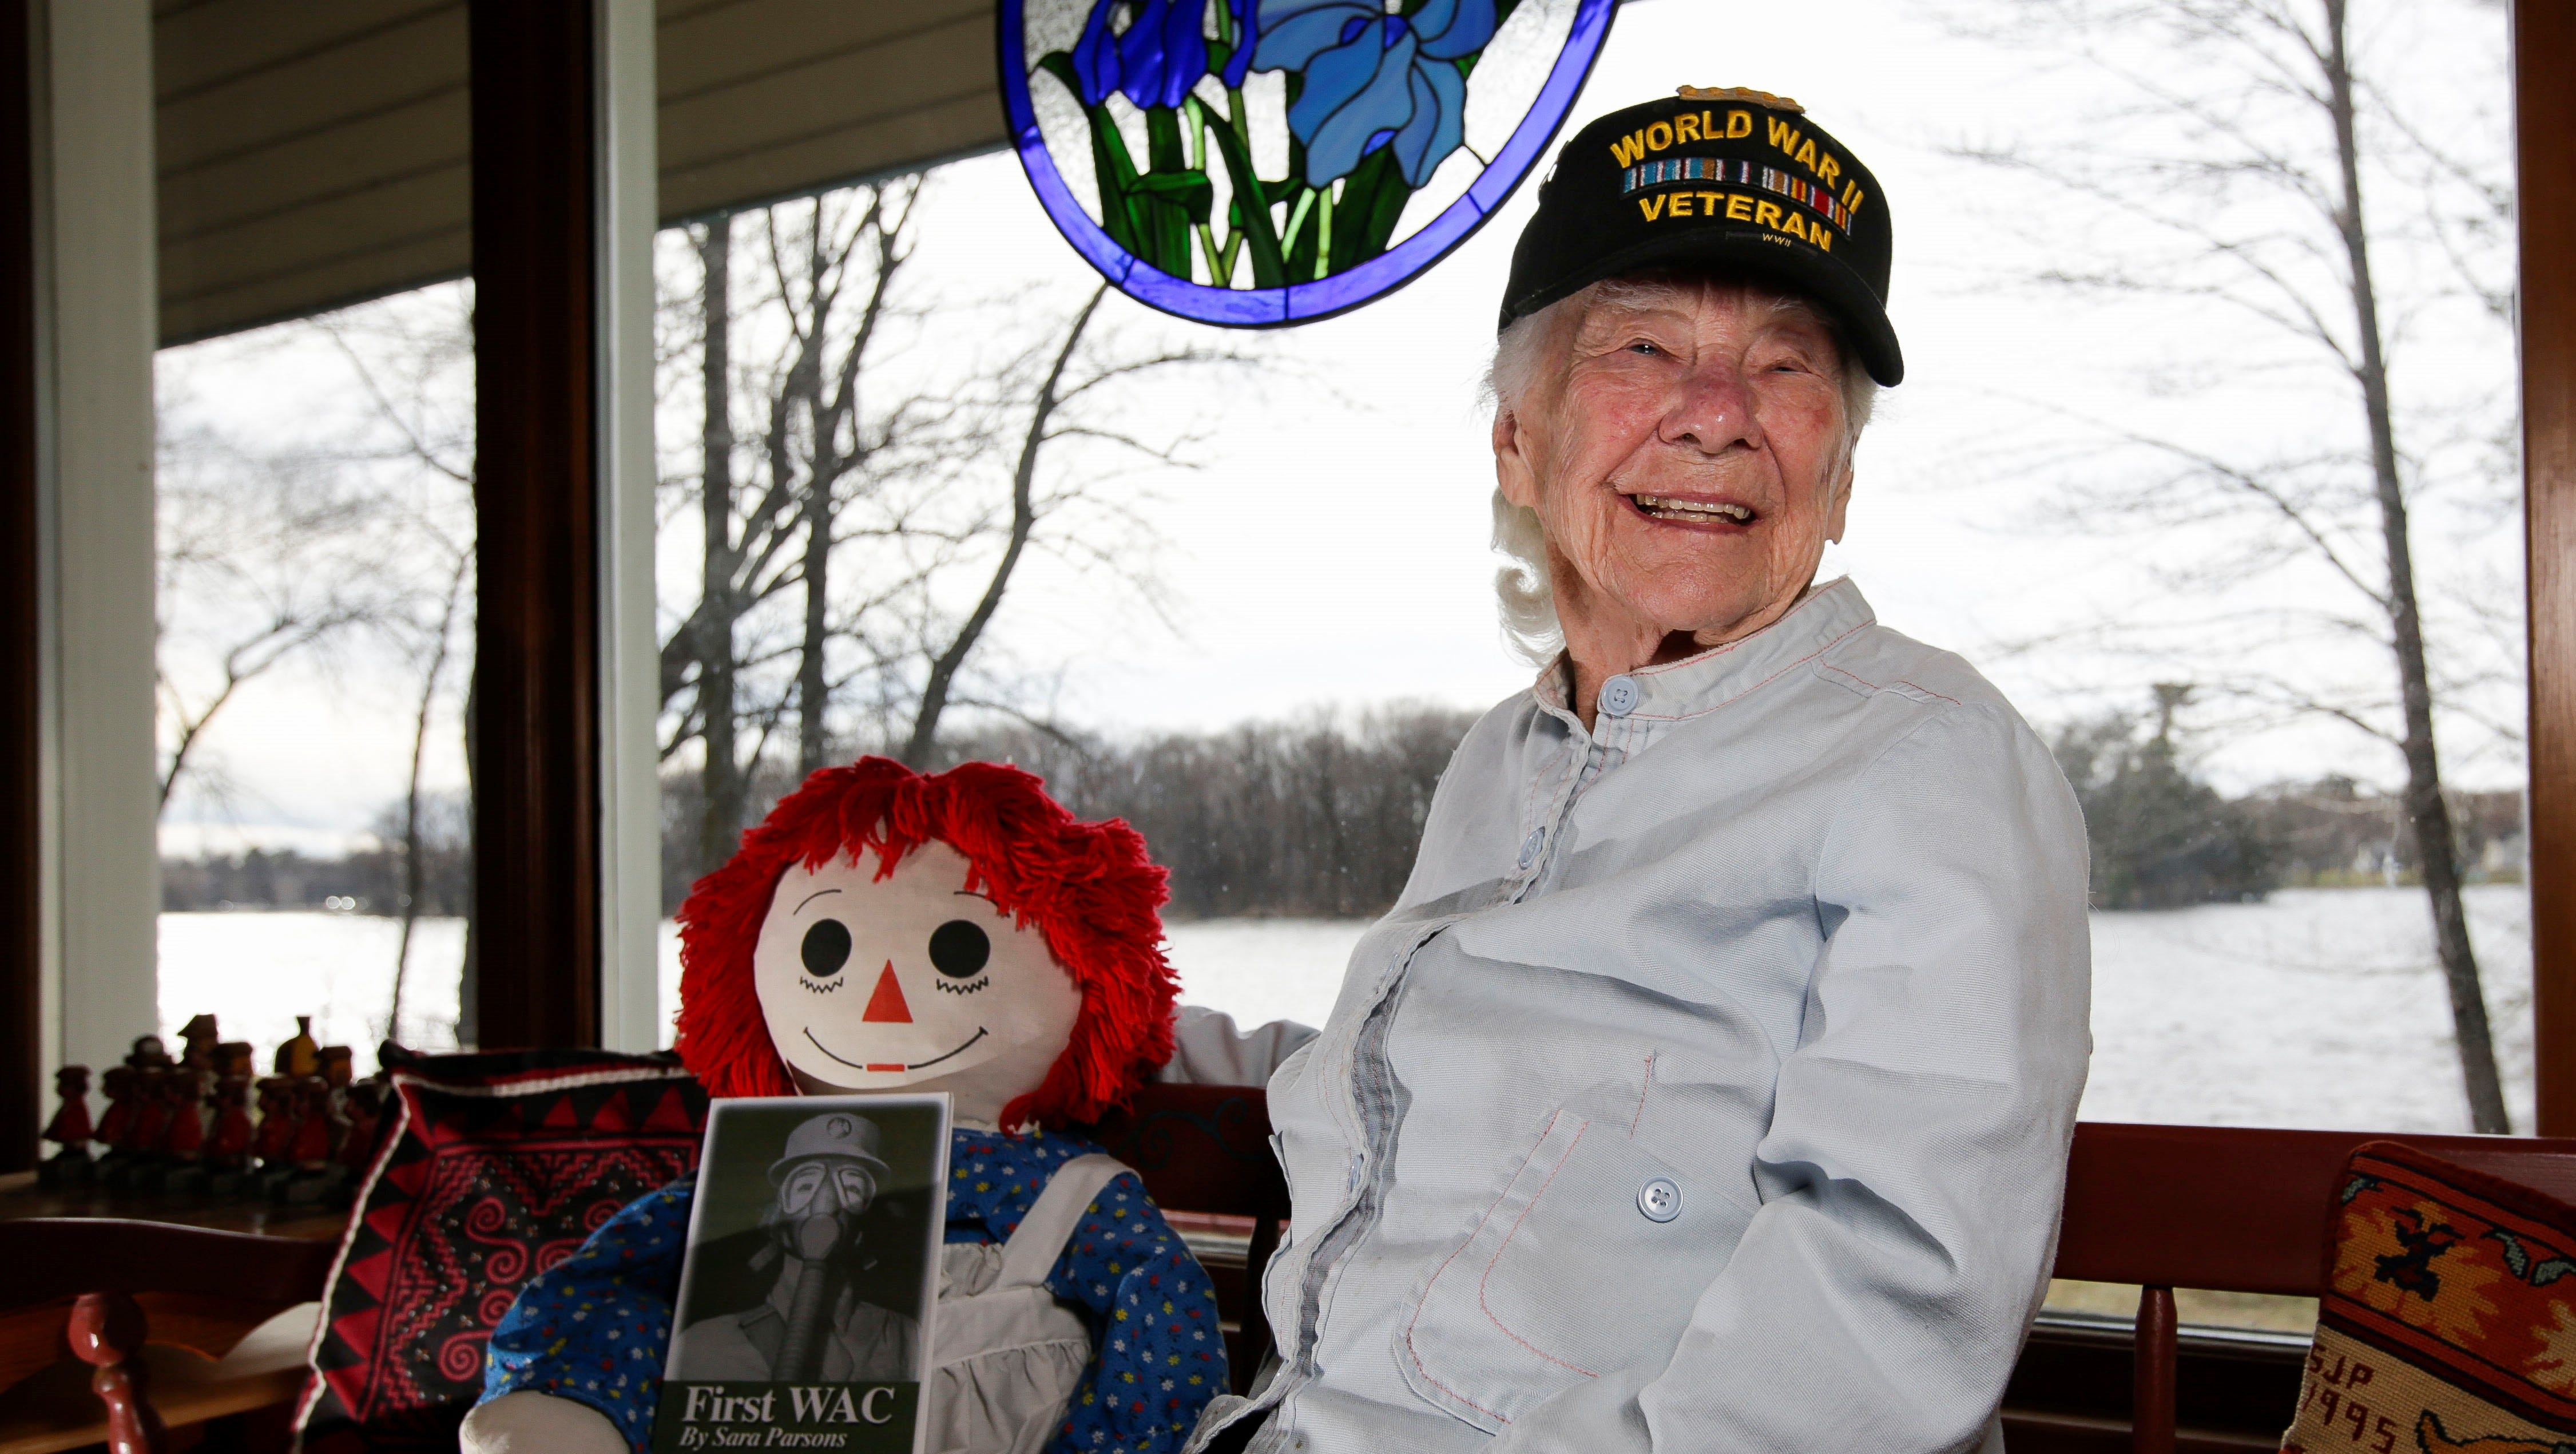 One of the first to join WACs in World War II, a trailblazer turns 100 on Easter Sunday.